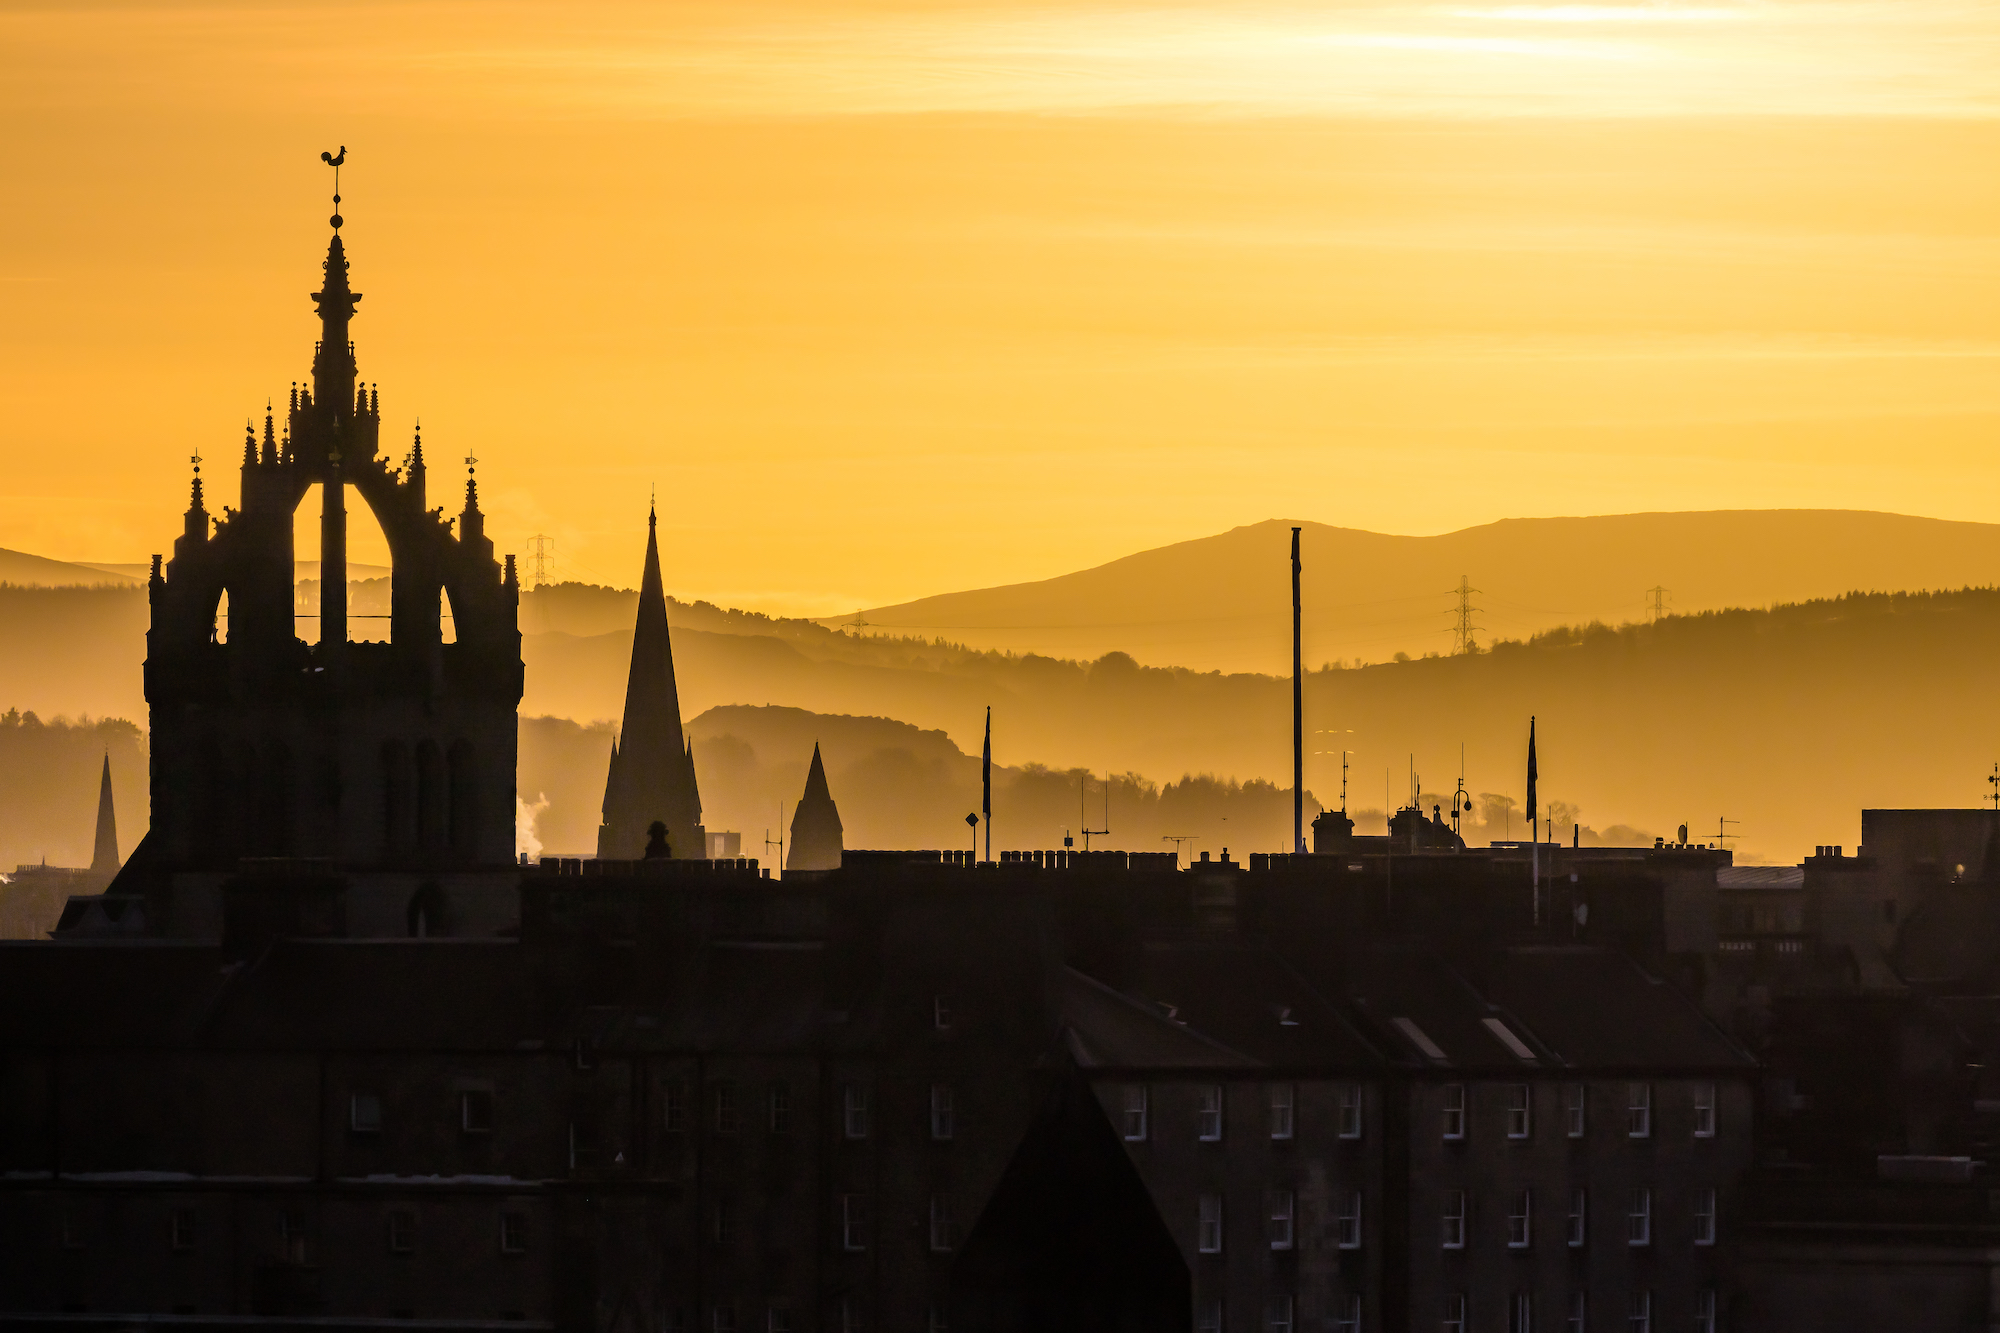 (1363) The Crown Steeple of St Giles' Cathedral and Pentland Hills in Golden Sunset, High Street, Royal Mile, Old Town, Edinburgh, Scotland 2018. Copyright David Wheater.jpg